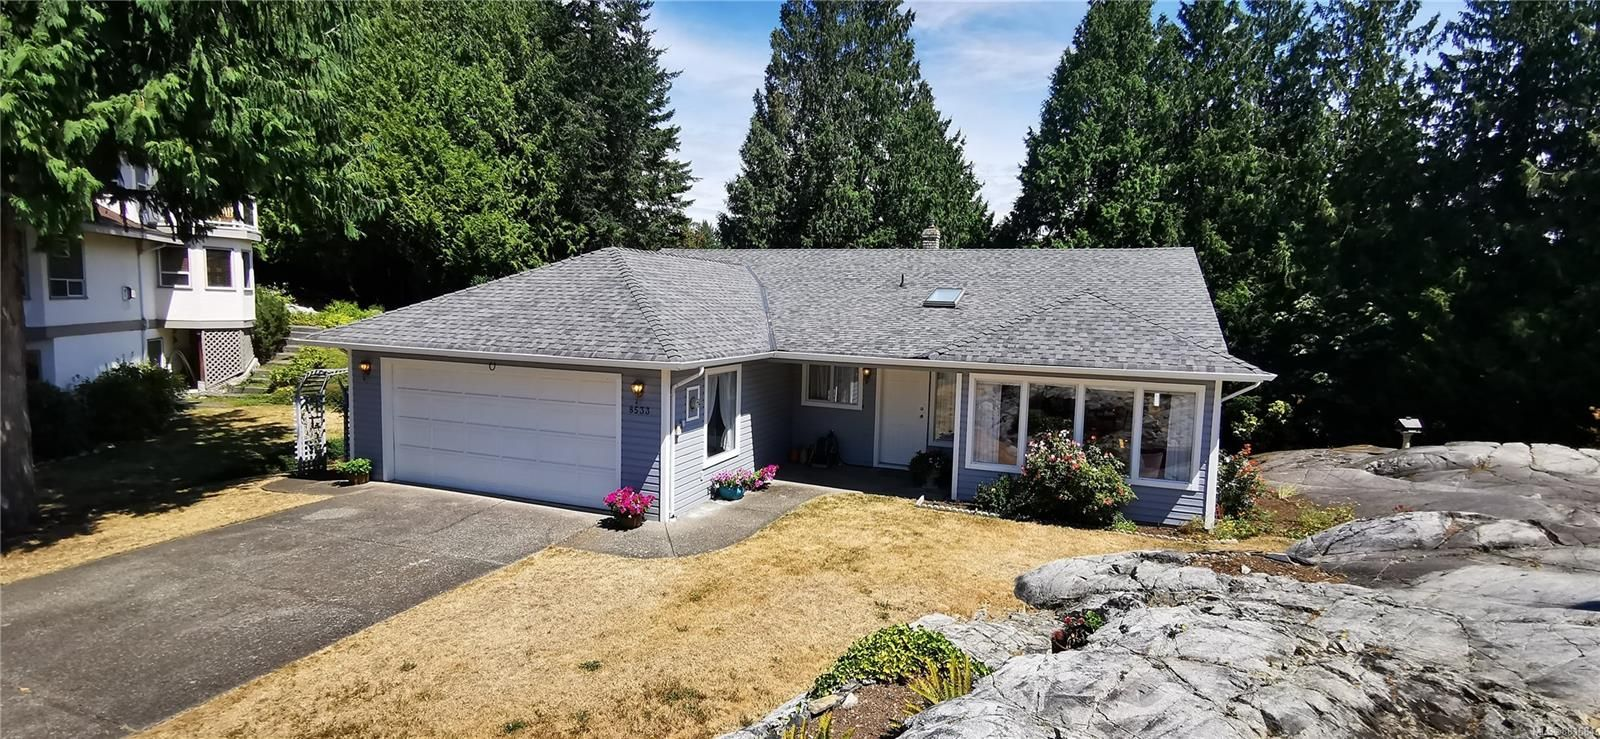 Main Photo: 8533 Tribune Terr in : NS Dean Park House for sale (North Saanich)  : MLS®# 881684